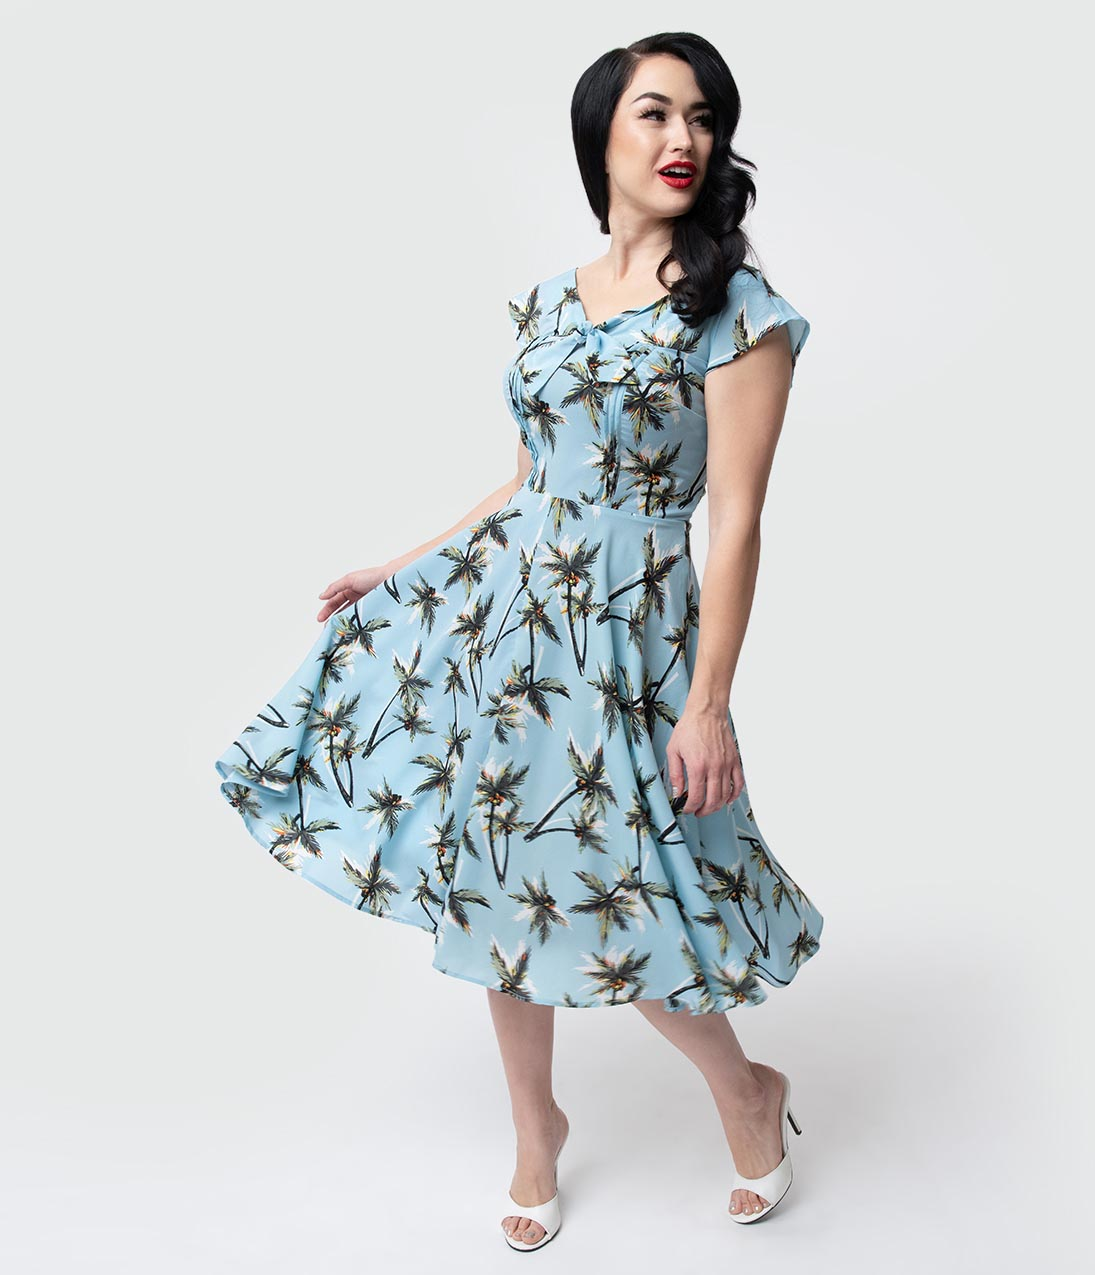 Vintage Tea Dresses, Floral Tea Dresses, Tea Length Dresses Unique Vintage 1940S Style Light Blue Palm Tree Print Havilland Dress $78.00 AT vintagedancer.com